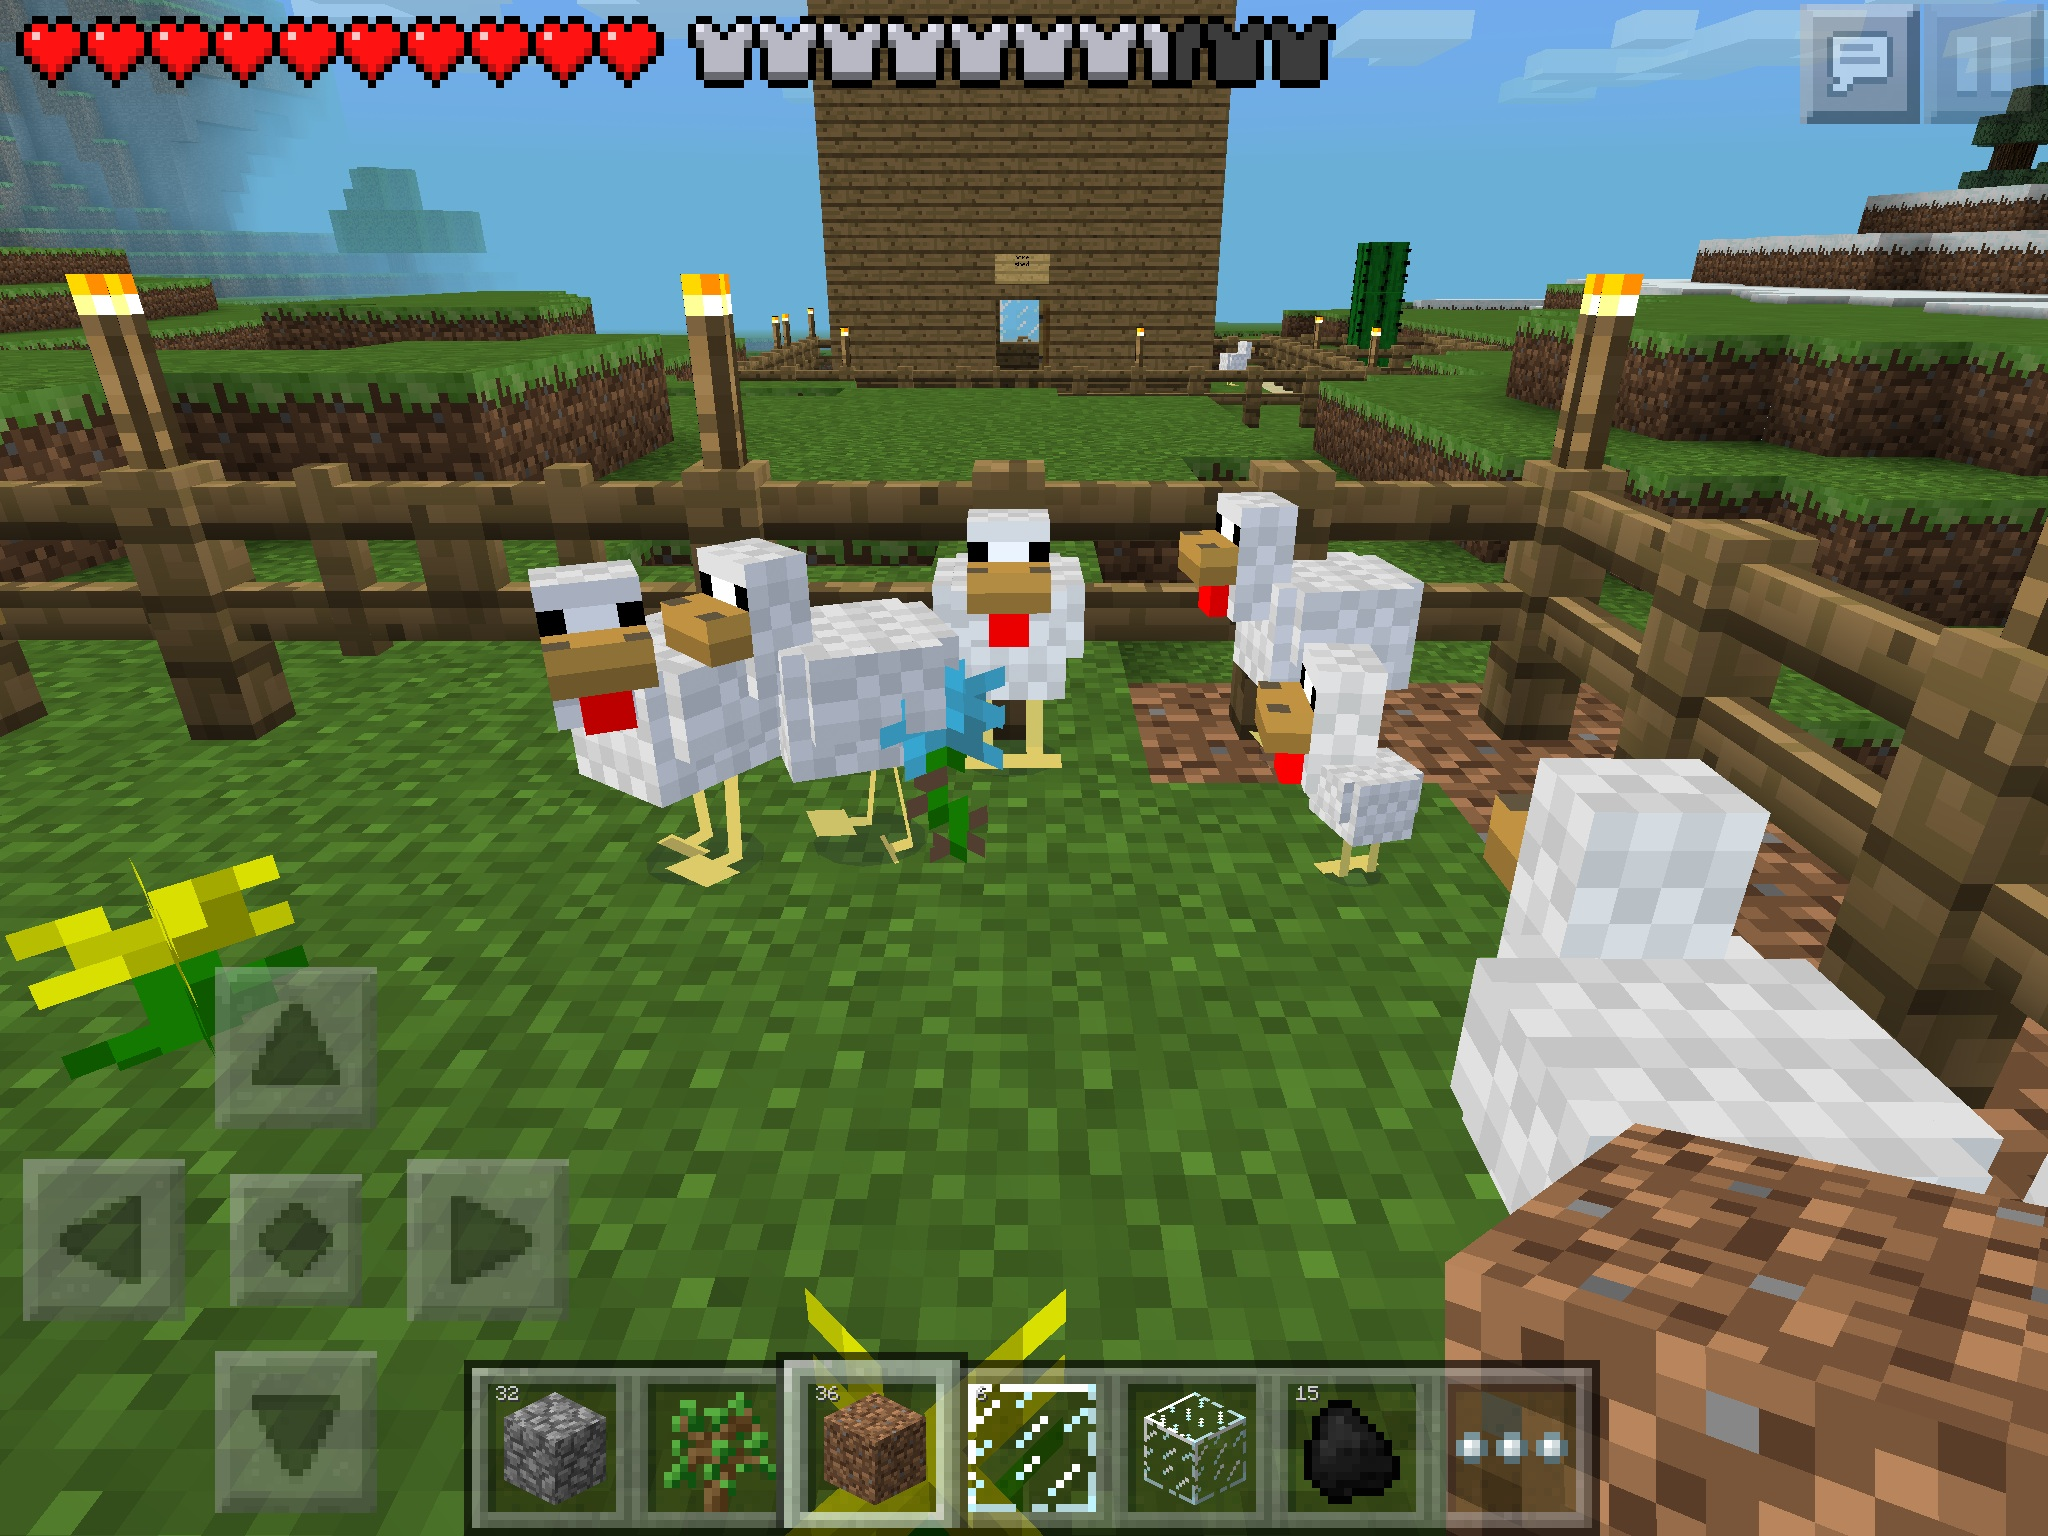 Minecraft pocket edition images chickens hang out at my chicken farm minecraft pocket edition images chickens hang out at my chicken farm hd wallpaper and background photos voltagebd Image collections